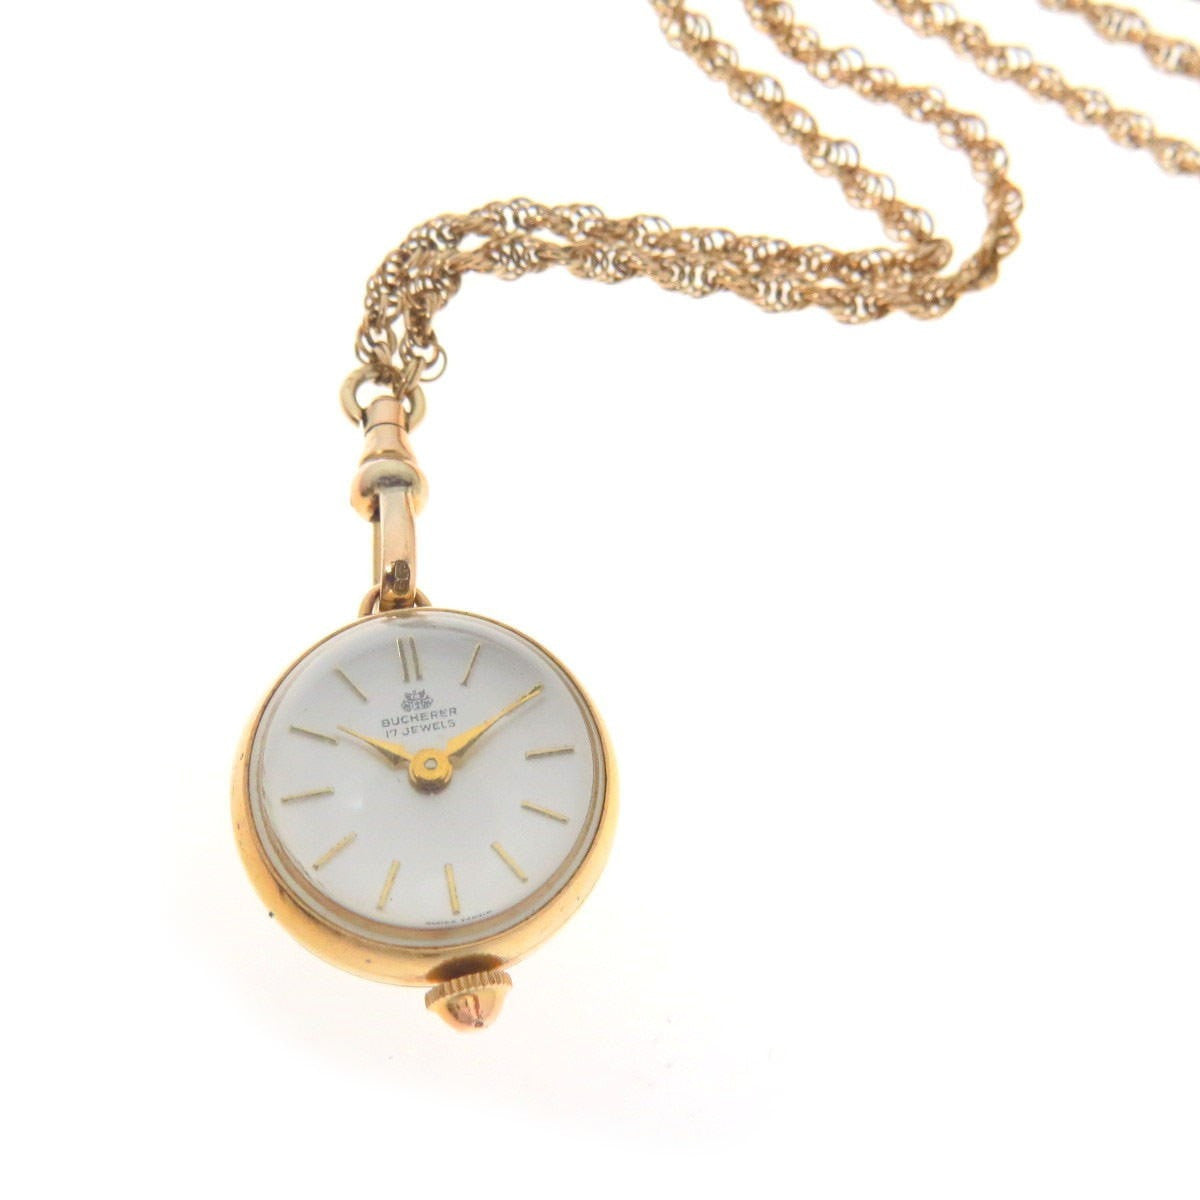 antique ladies waltham solid anniversary pendant quarterpastvintage fob watch by intricate great pin gold present victorian gift necklace pocket